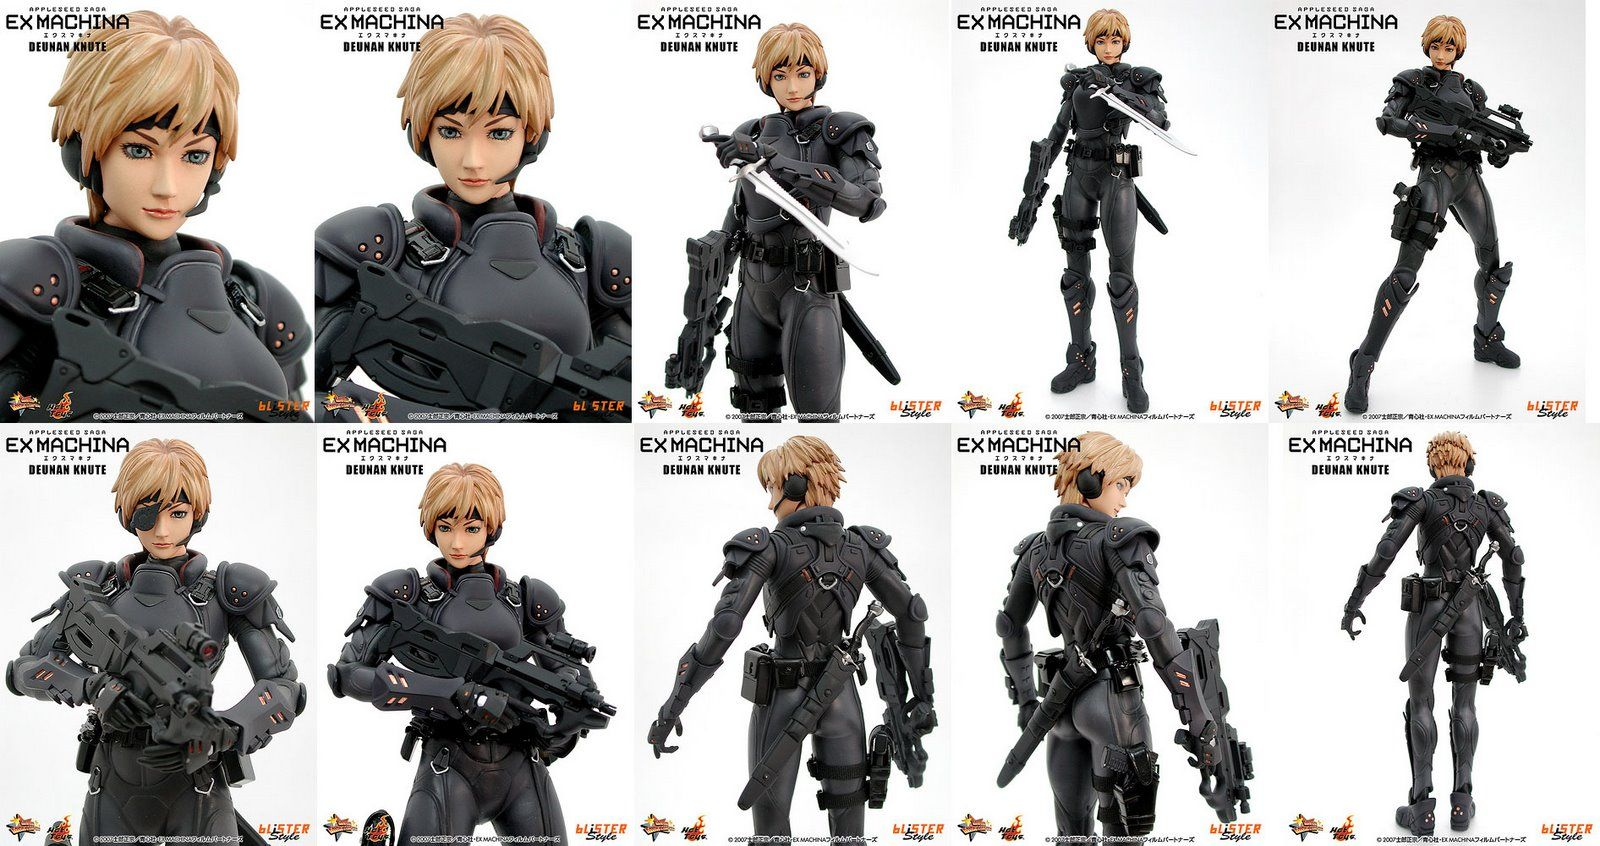 Appleseed Character Design : Appleseed ex machina briareos and deunan google search